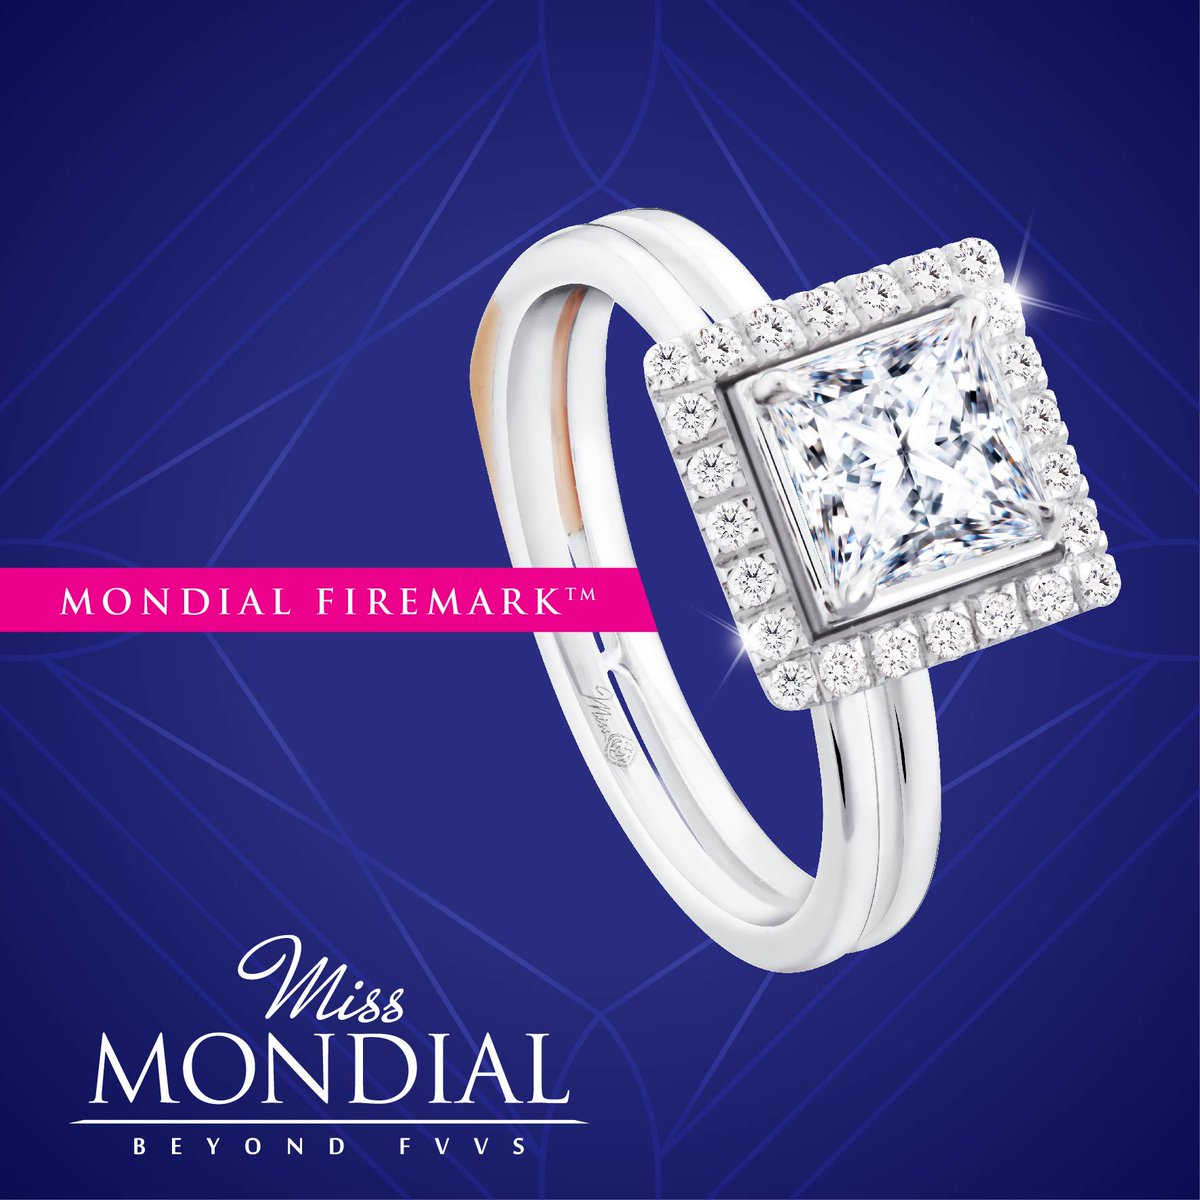 days diamond collections jewellers anstett firemark